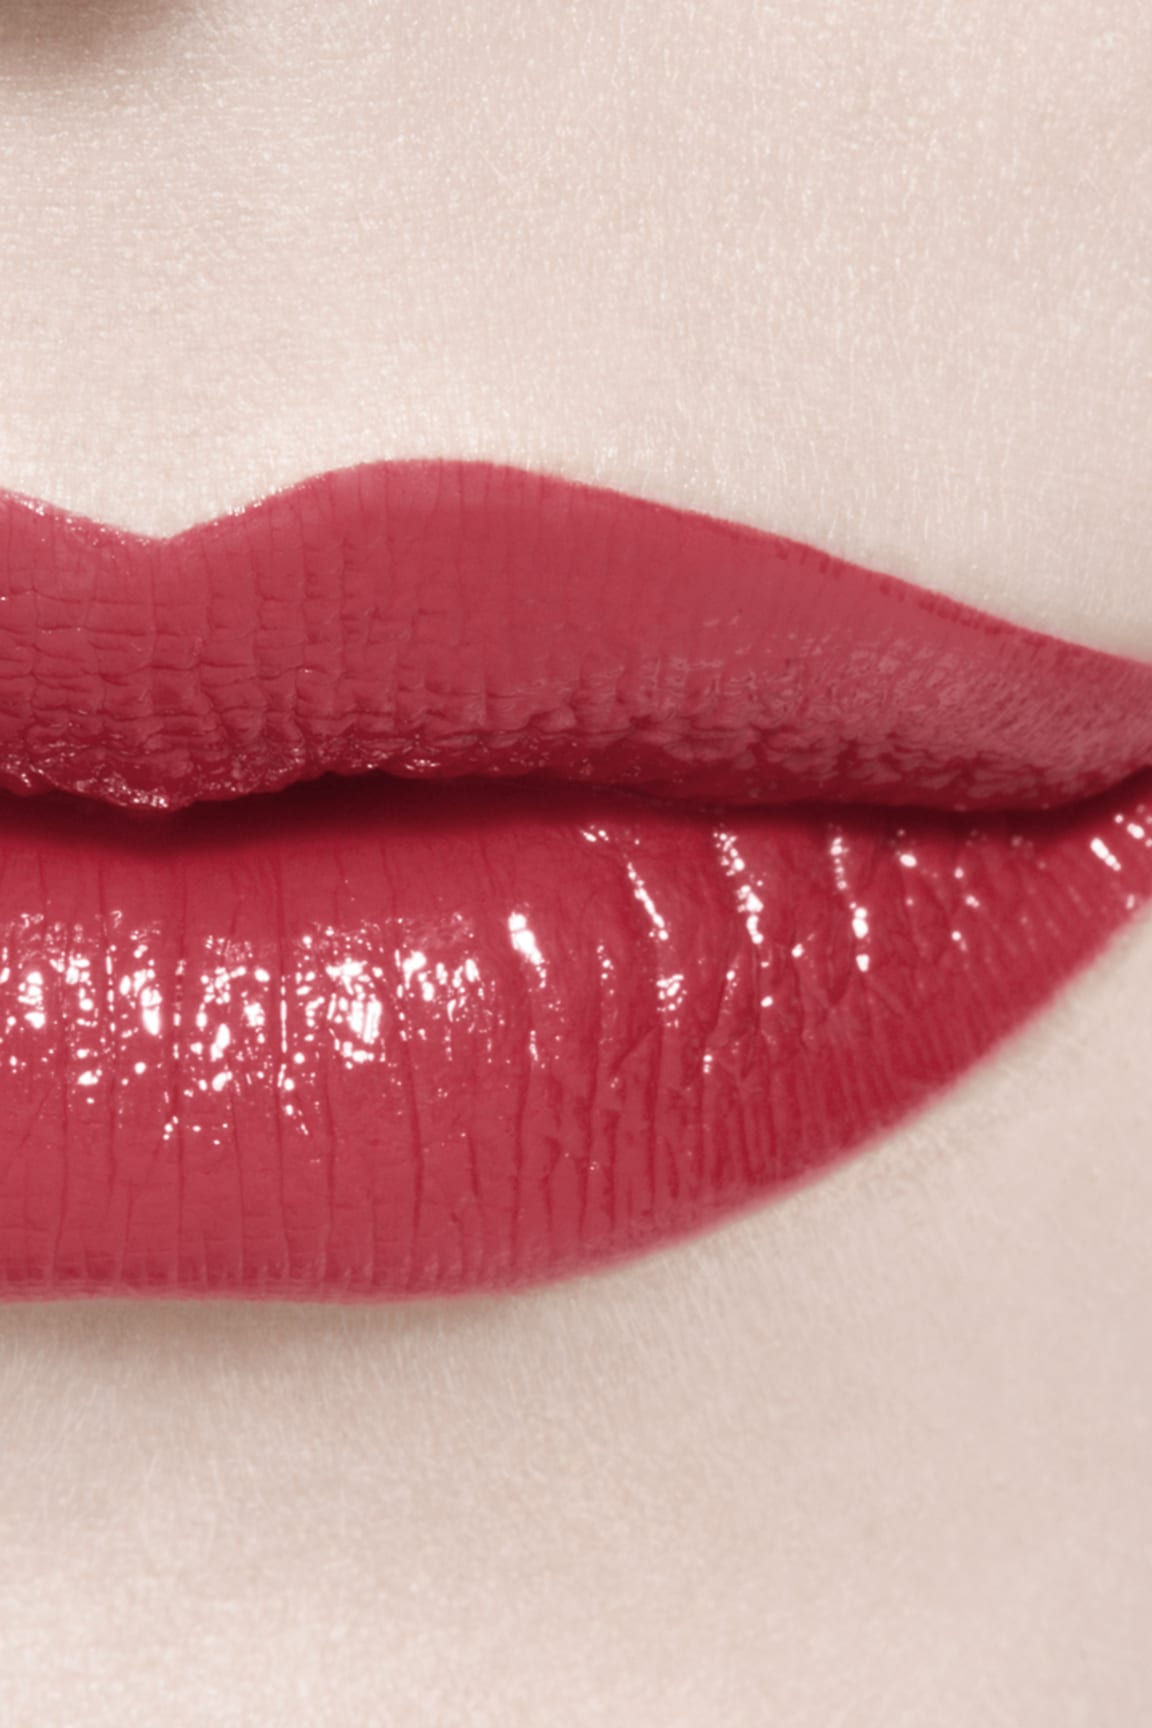 Application makeup visual 3 - ROUGE COCO BLOOM 124 - MERVEILLE